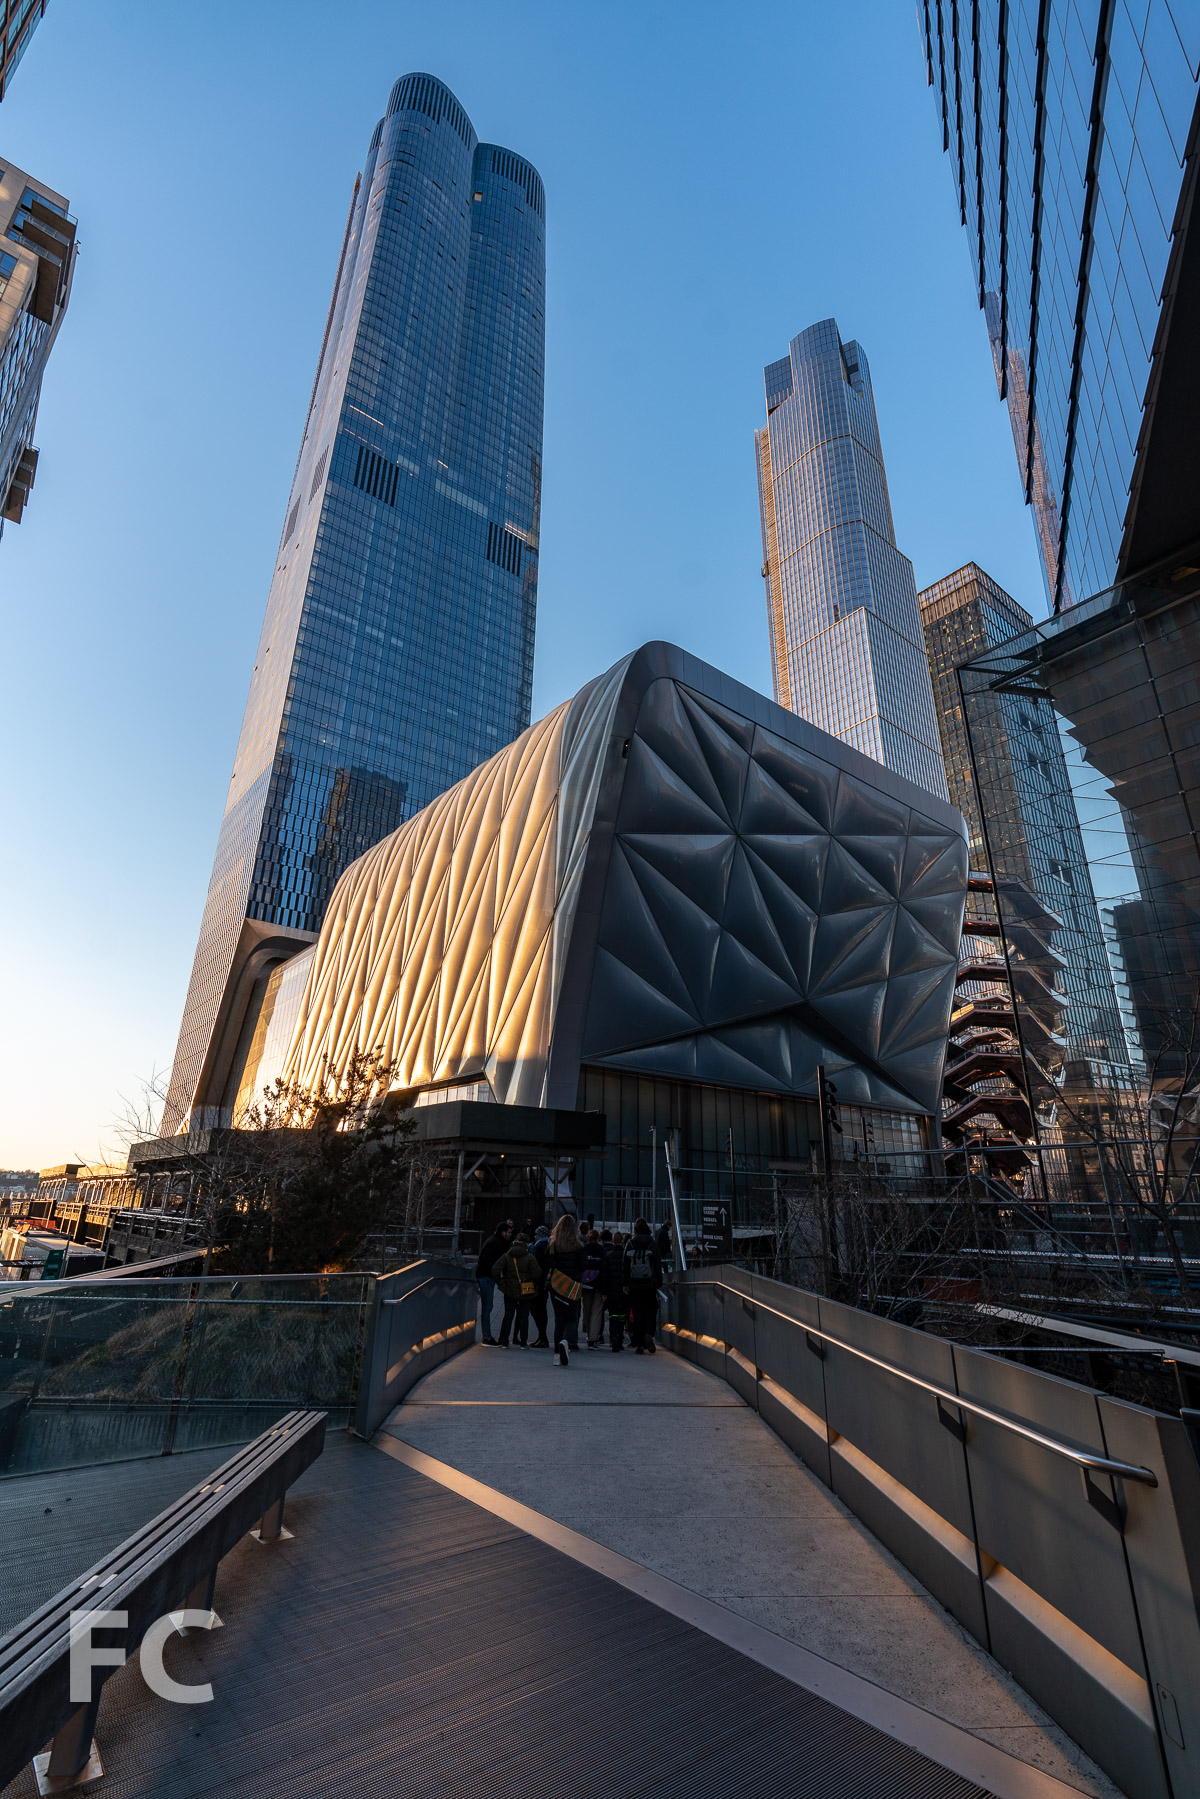 2019_03_30-The Shed at Hudson Yards-DSC09738.jpg